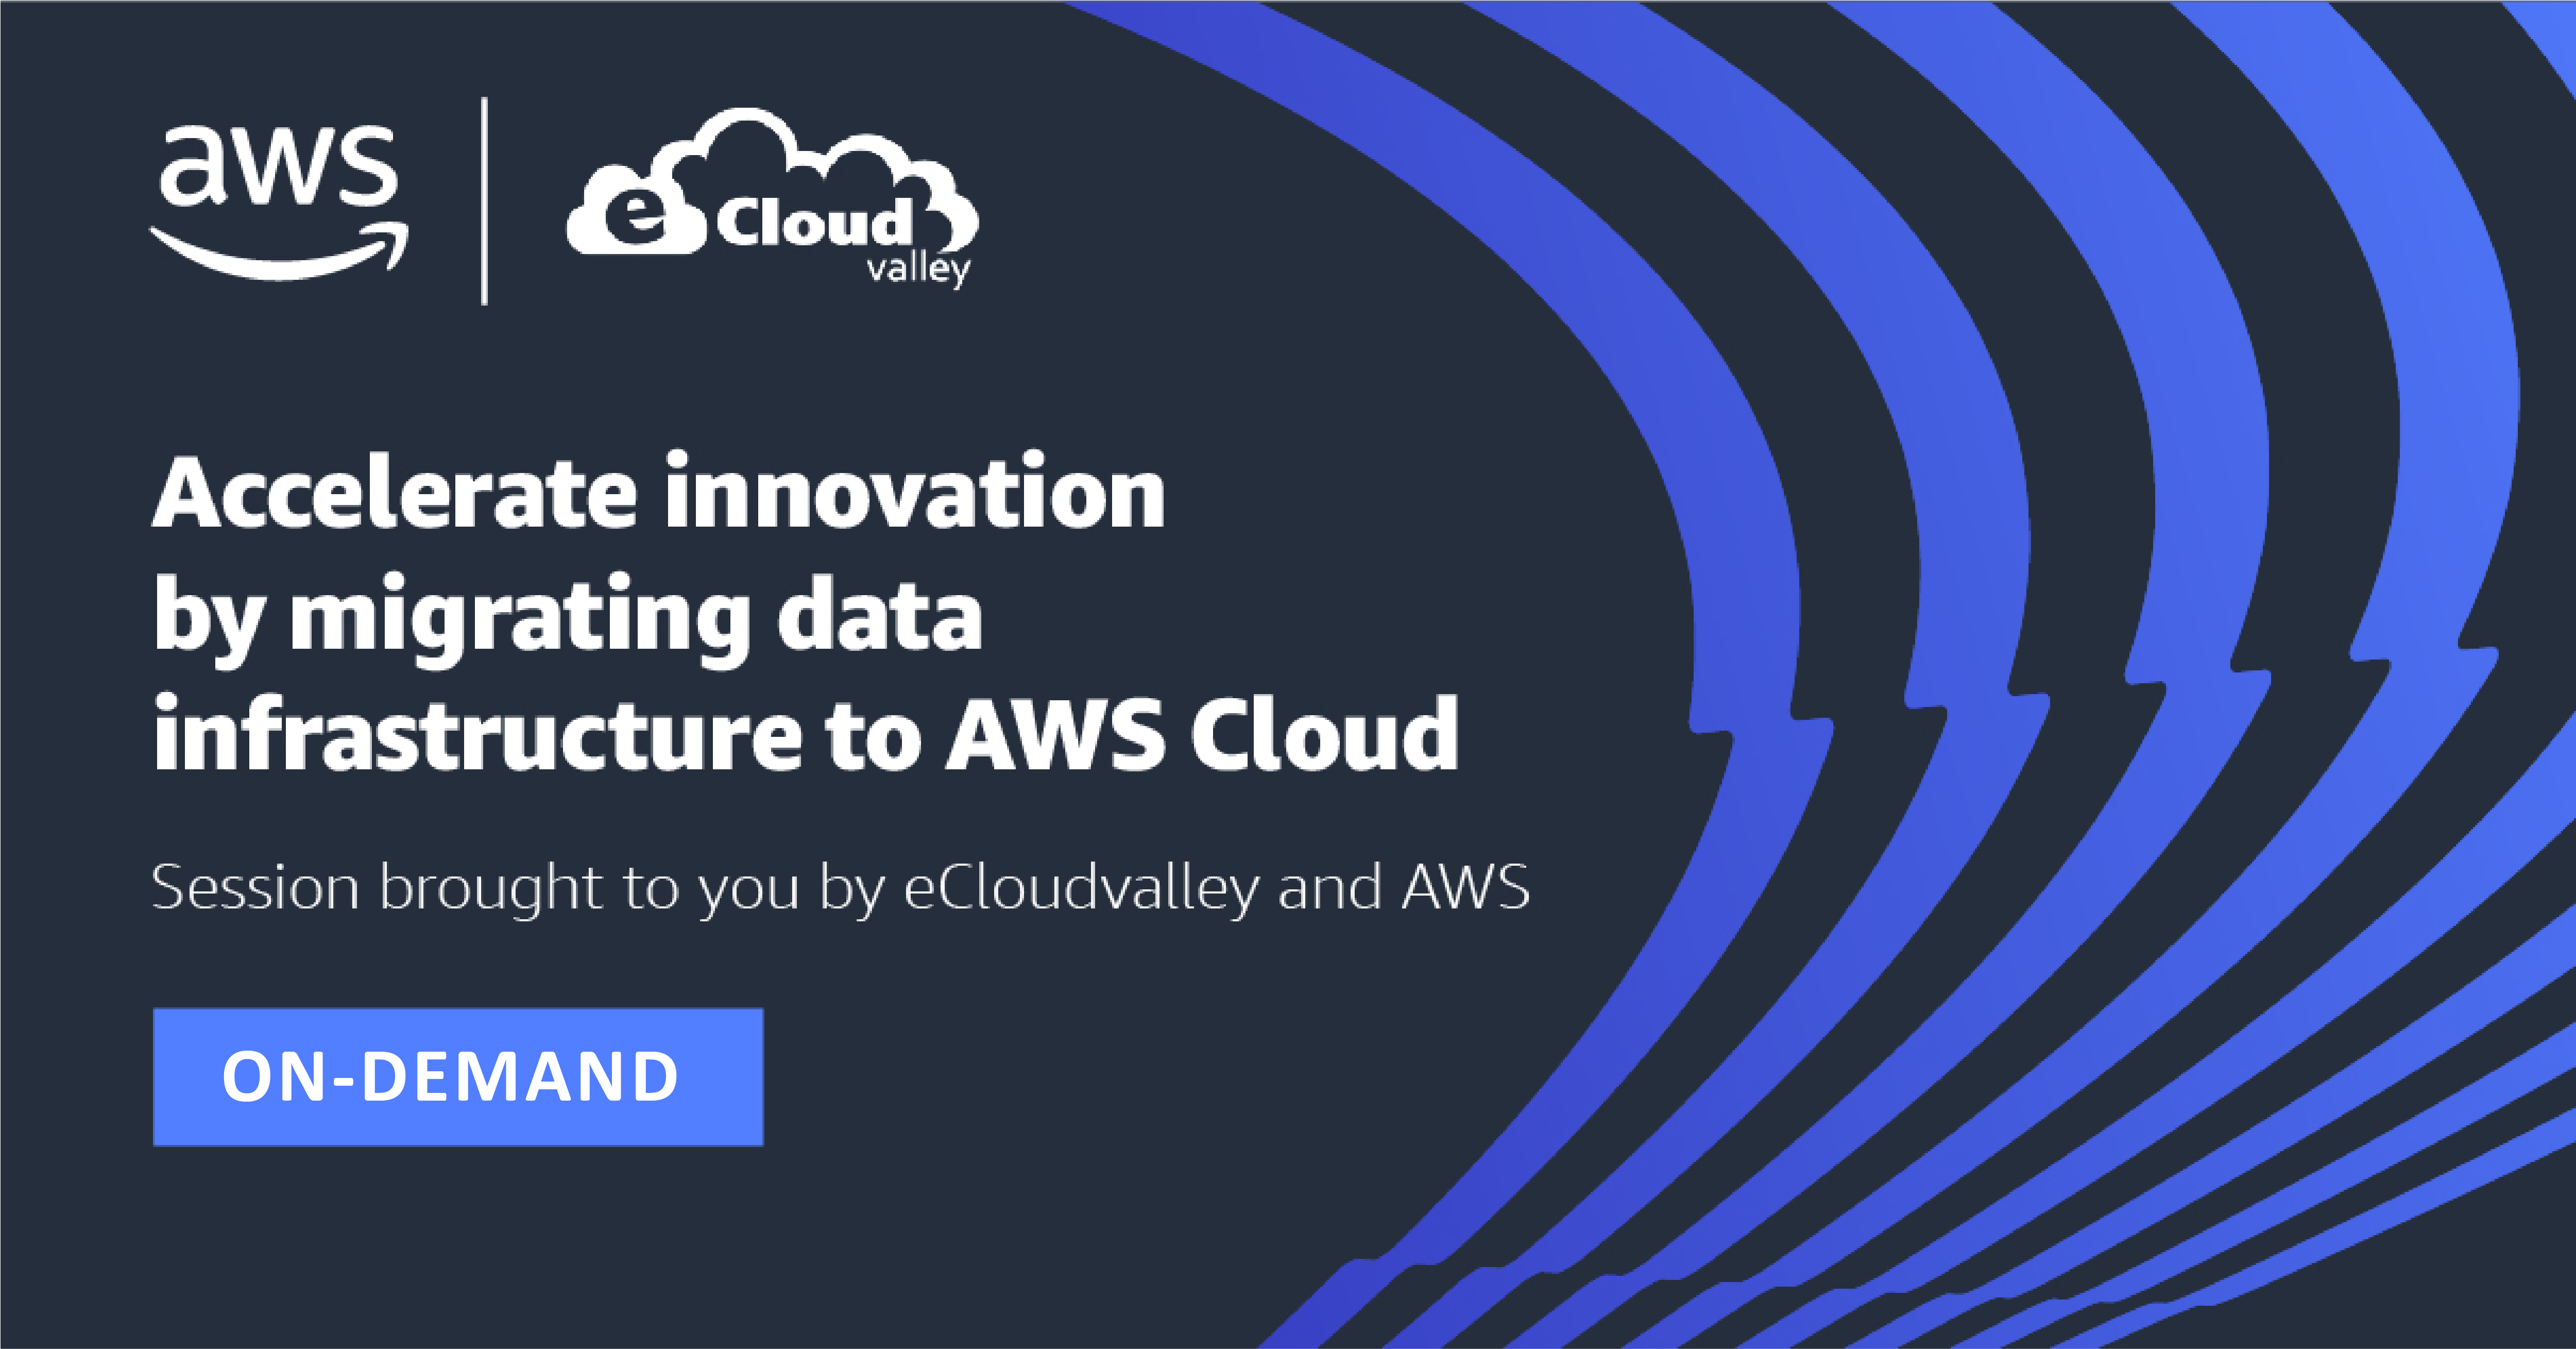 ON-DEMAND : Accelerate innovation by migrating data infrastructure to AWS Cloud